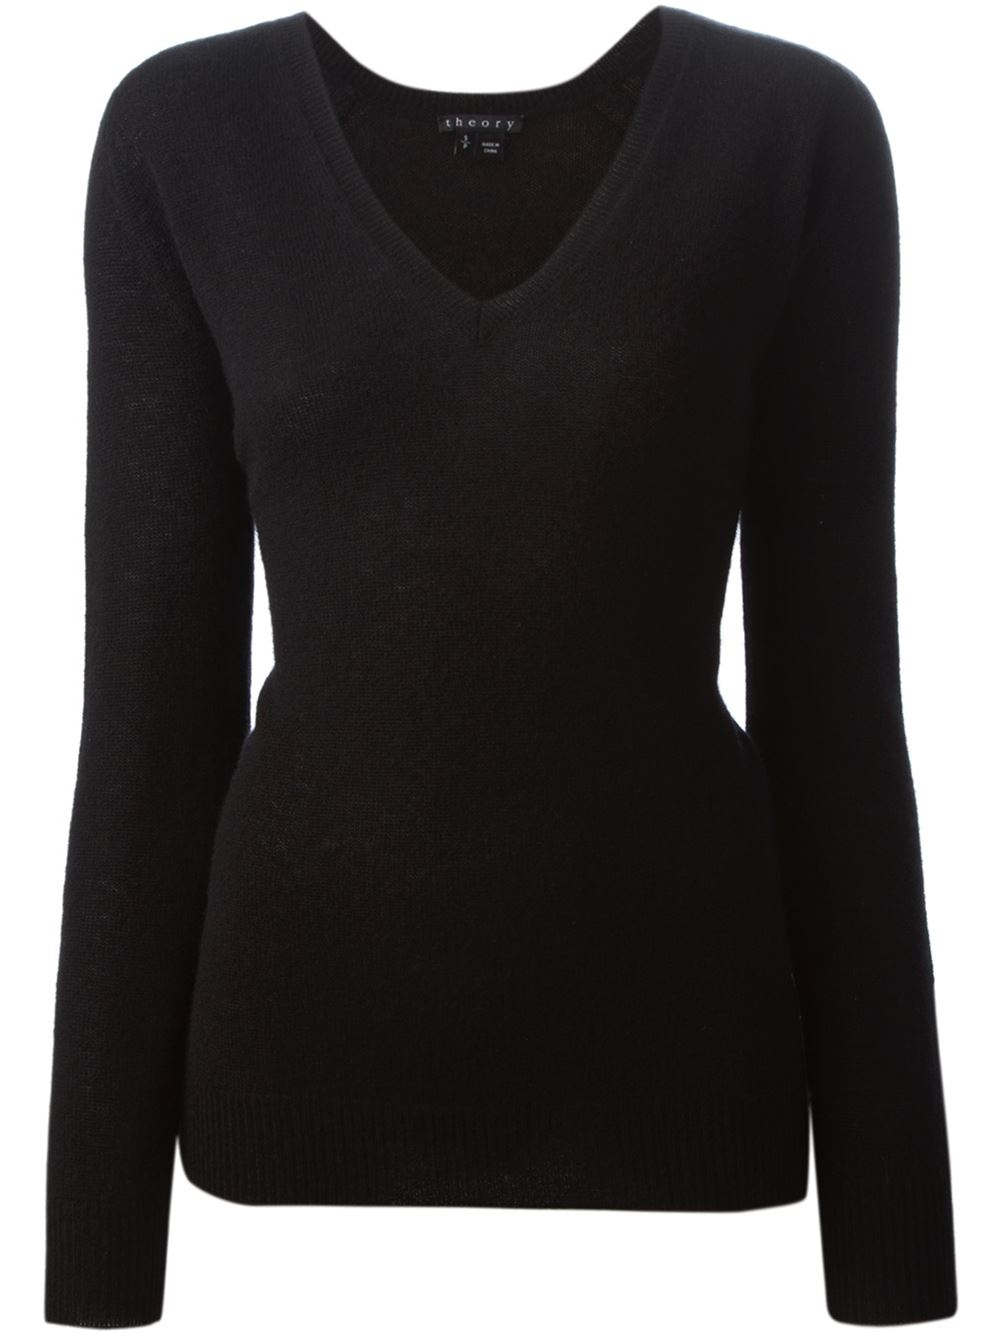 Sears has women's sweaters for warmth and style. Create a layered look with women's cardigans.